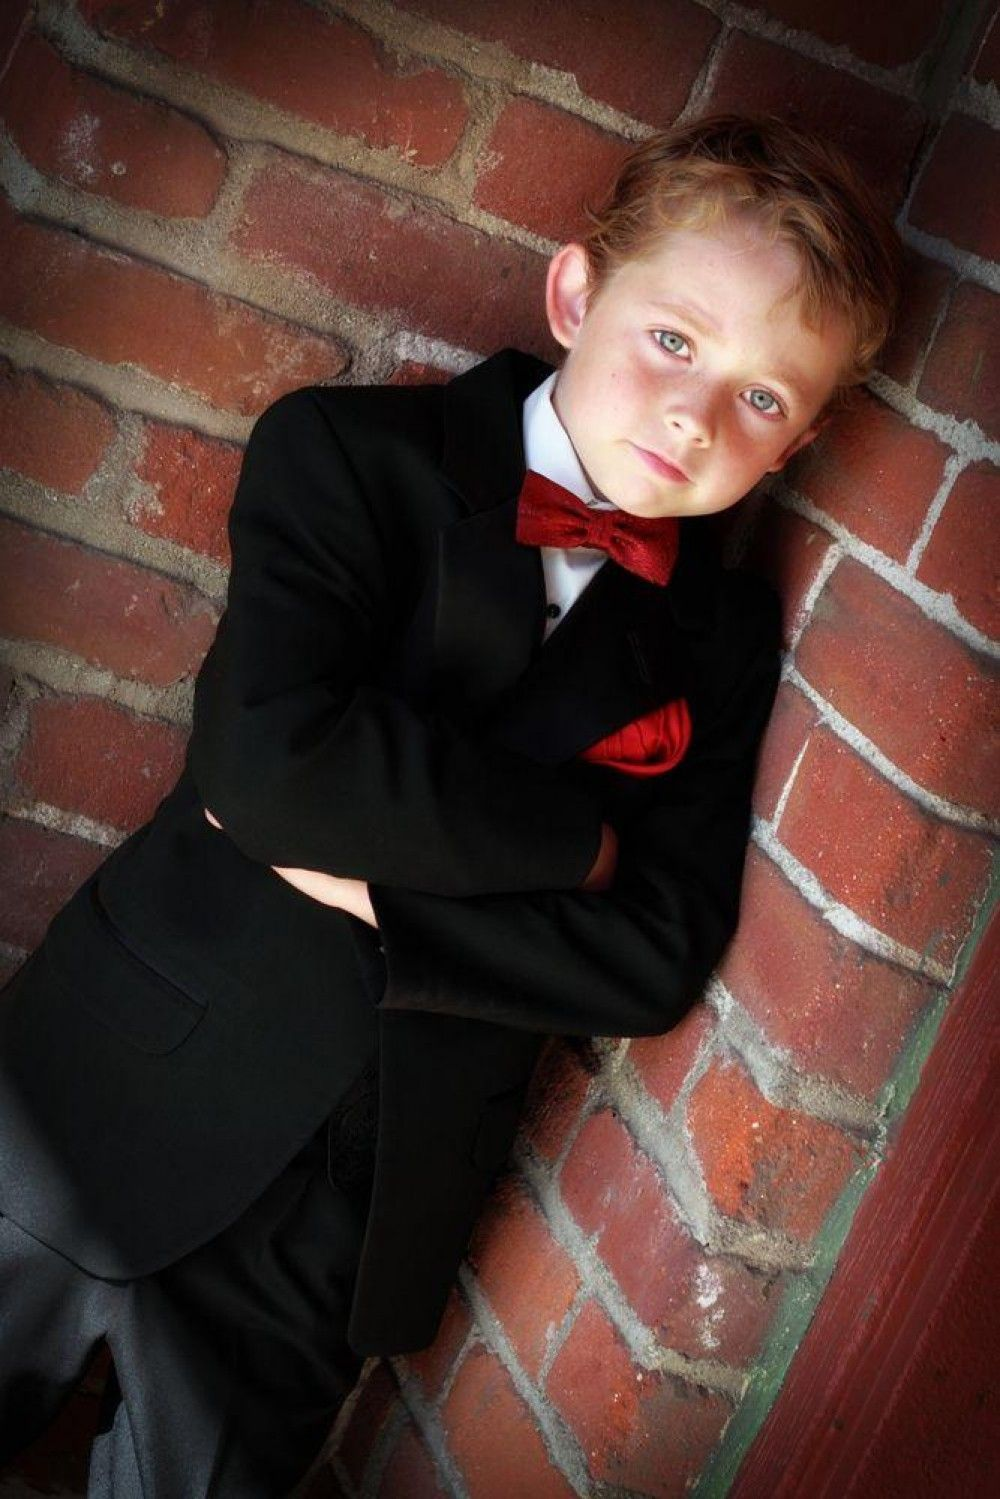 Ring bearer in a nice suit